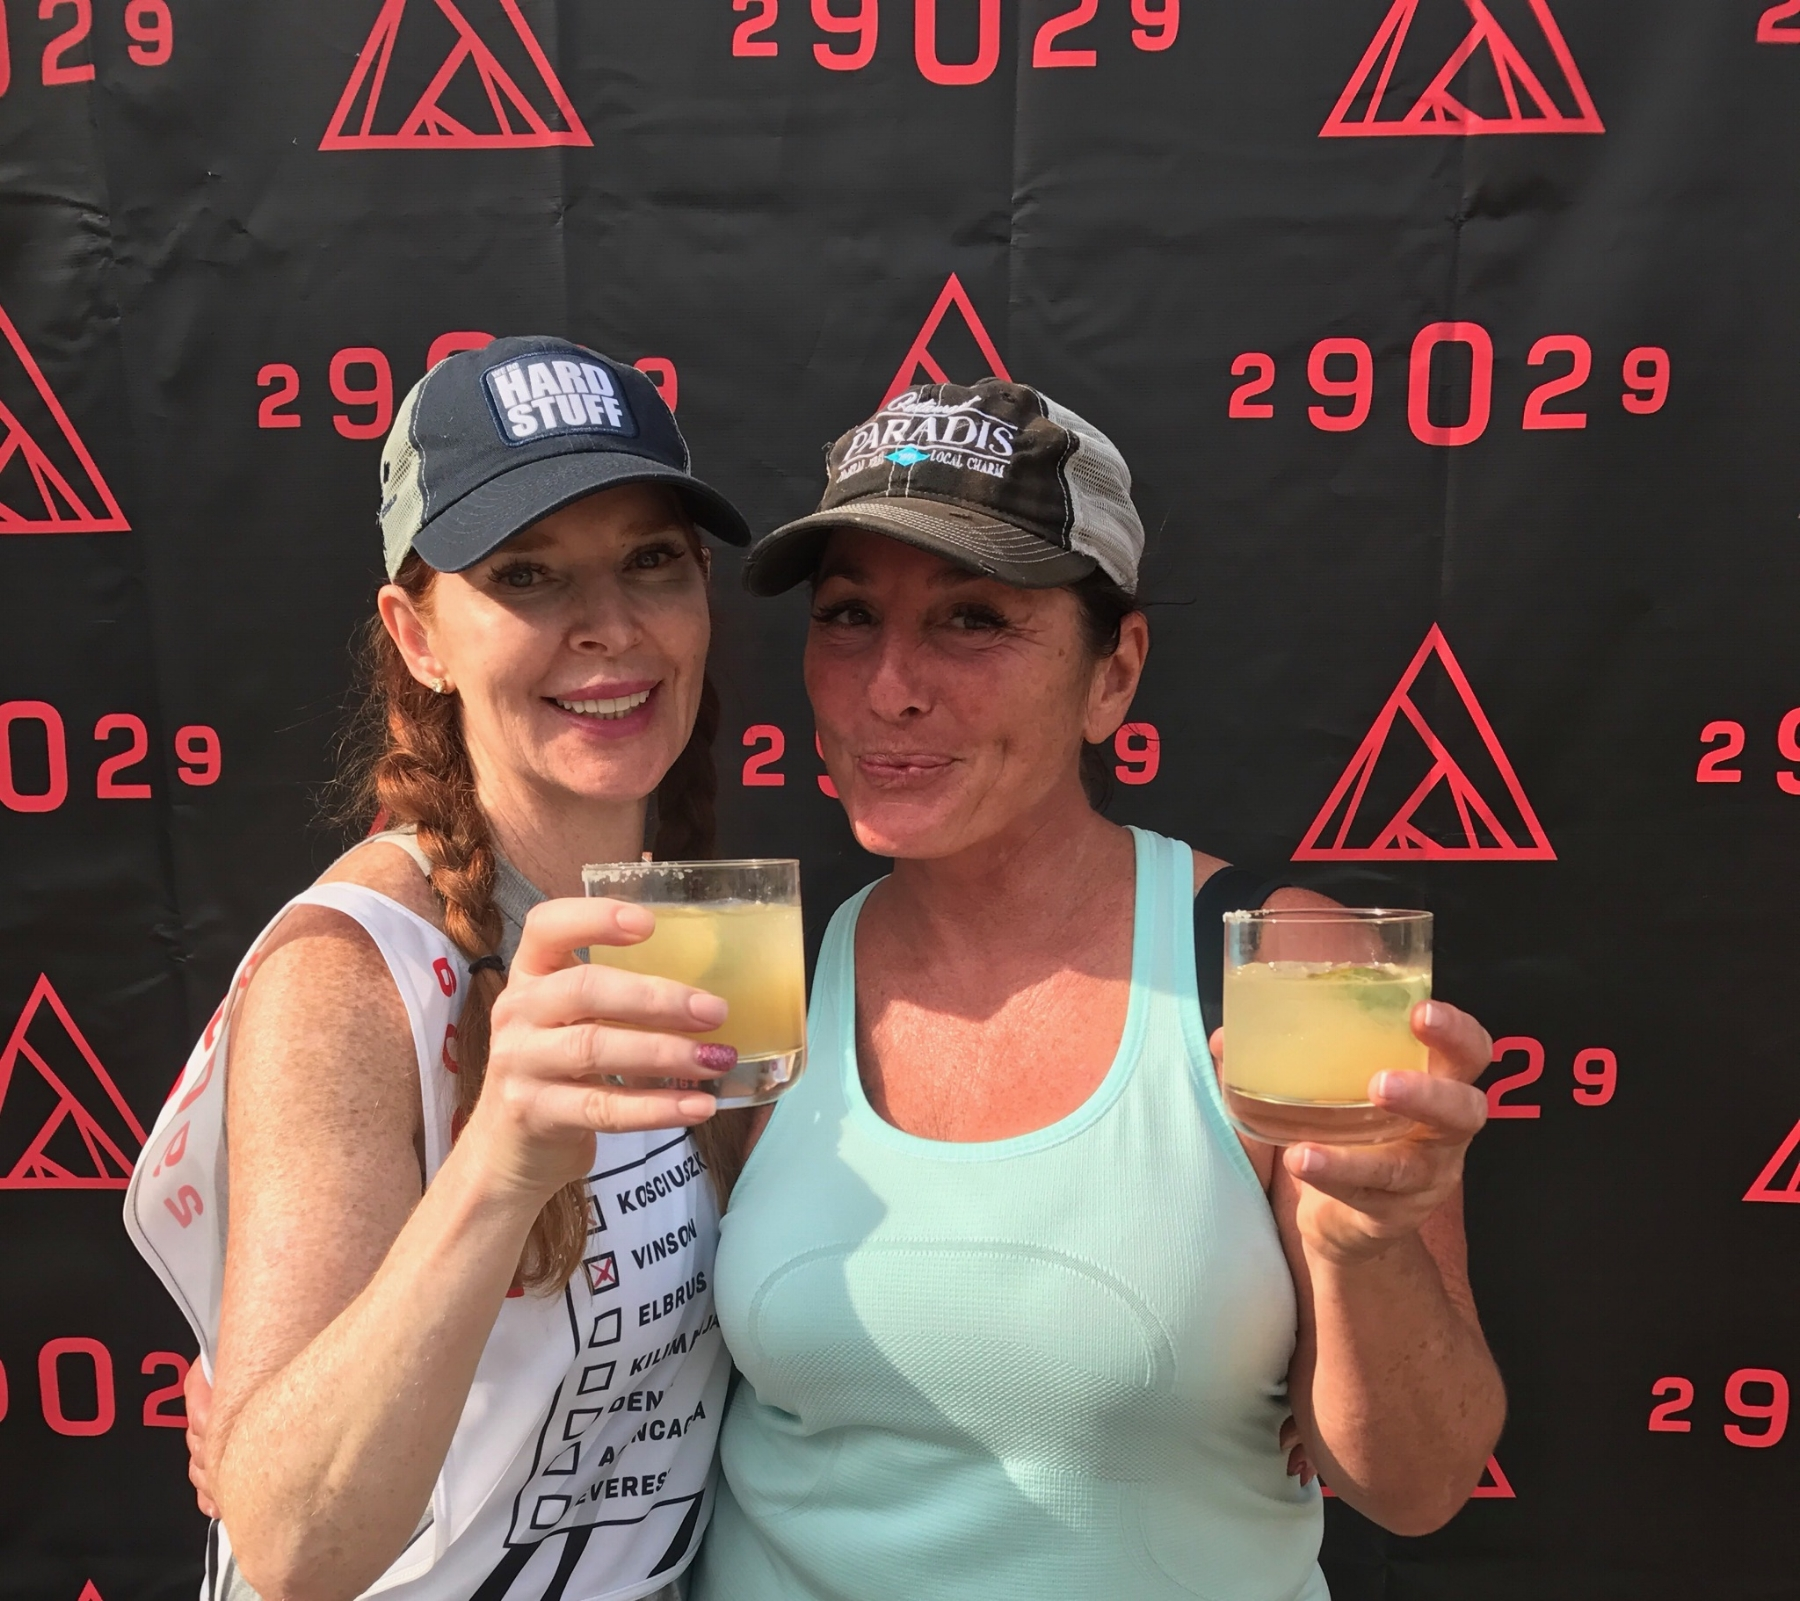 A celebratory cocktail with Linda to toast an amazing experience!